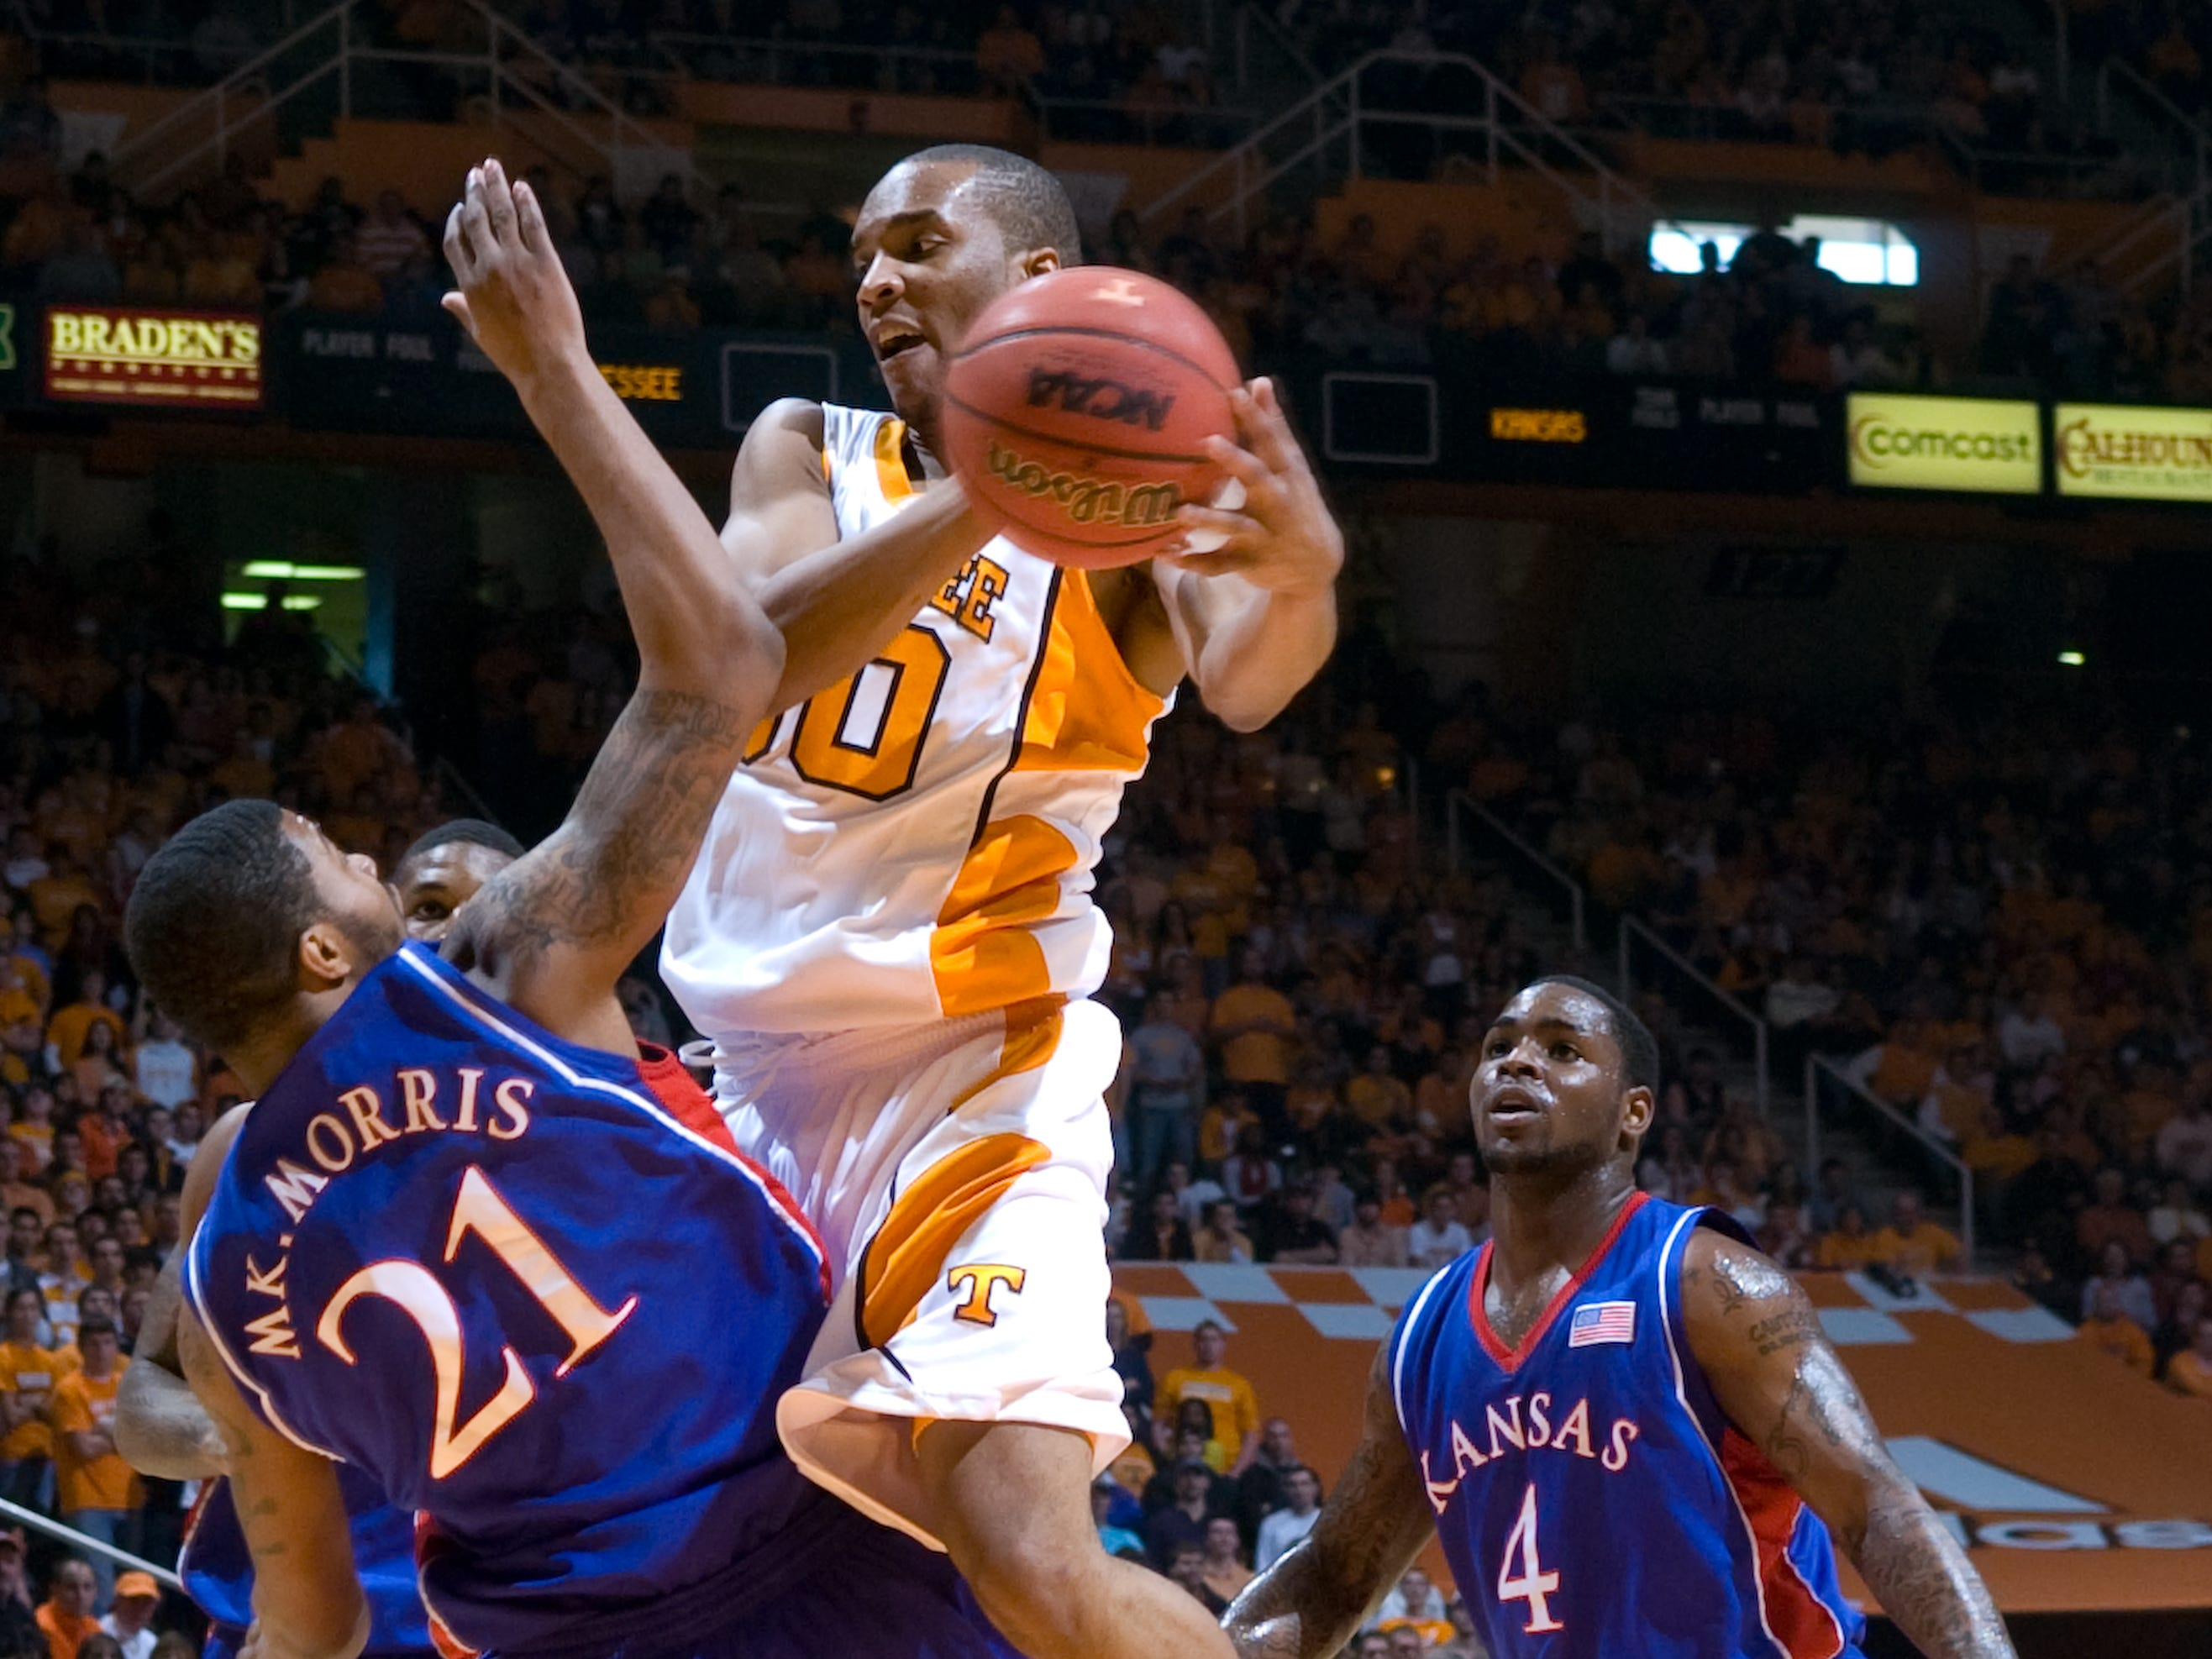 J.P. Prince runs into Kansas' Markieff Morris while driving towayds the basket. Prince had 8 points and 2 assists. At right is Kansas' Sherron Collins. Tennessee upsets number one ranked  Kansas 76-68 at Thompson-Boling Arena  Sunday, Jan 10, 2010.